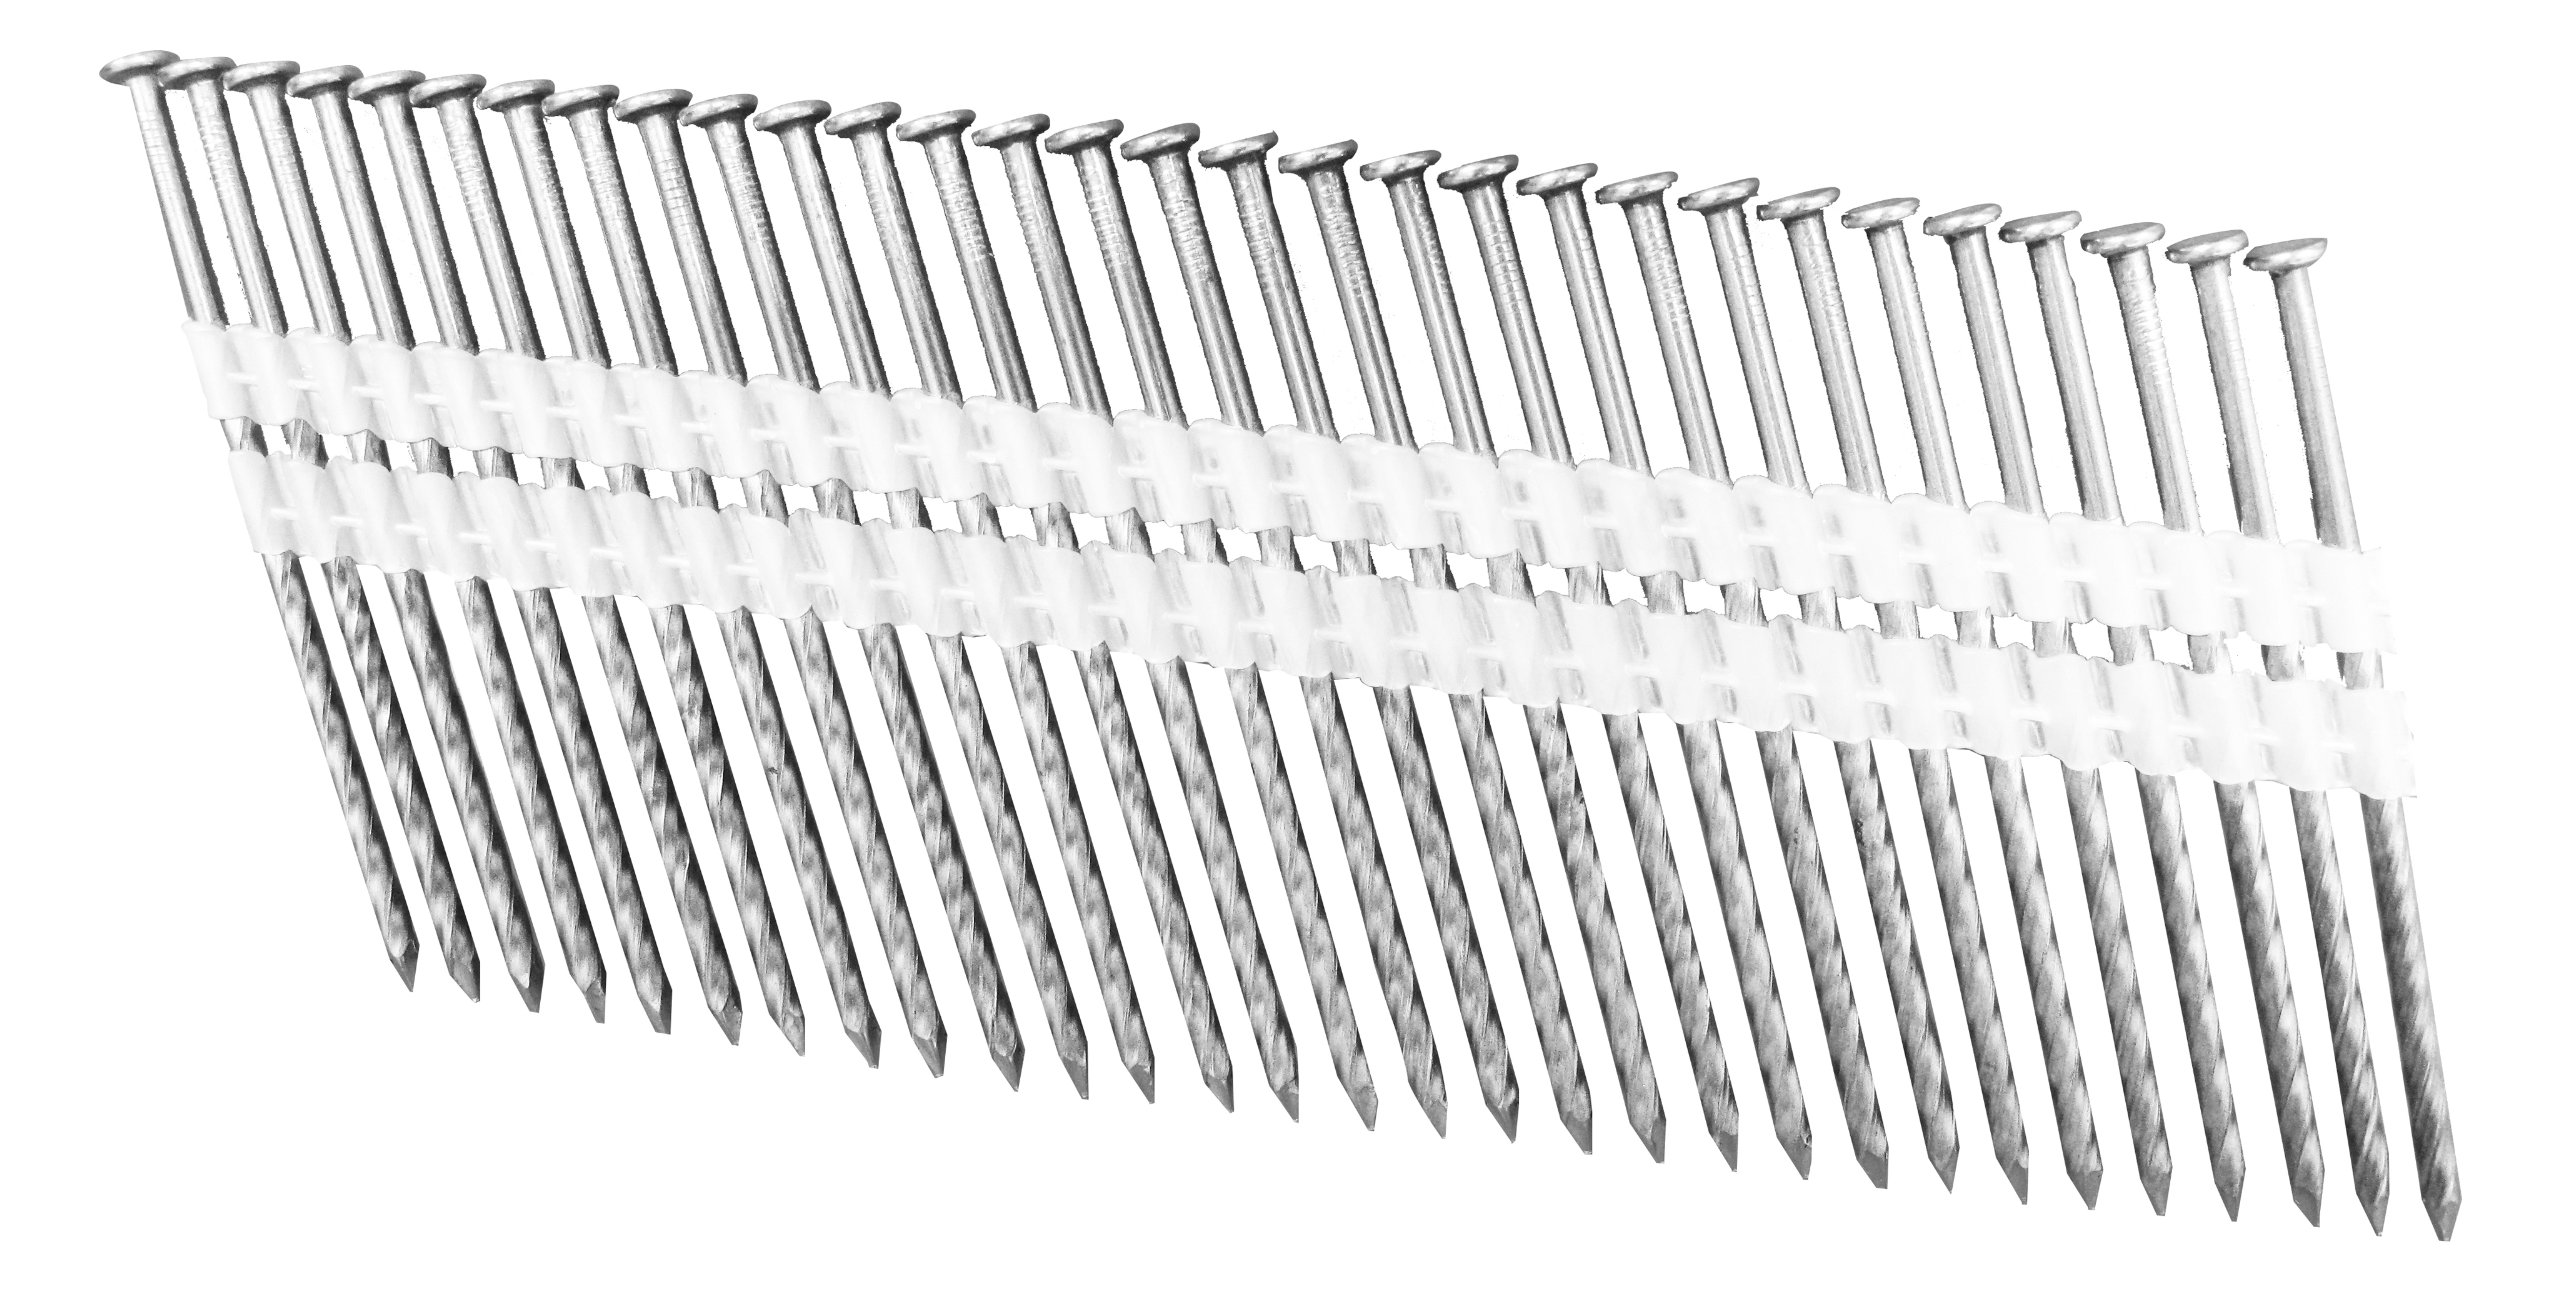 Fasco FP454820SHDE 5-1/8-Inch by .148-Inch Screw Shank Hot Dipped Galv Jumbo Nails for Fasco and Bostitch Nailers, 1250-Piece